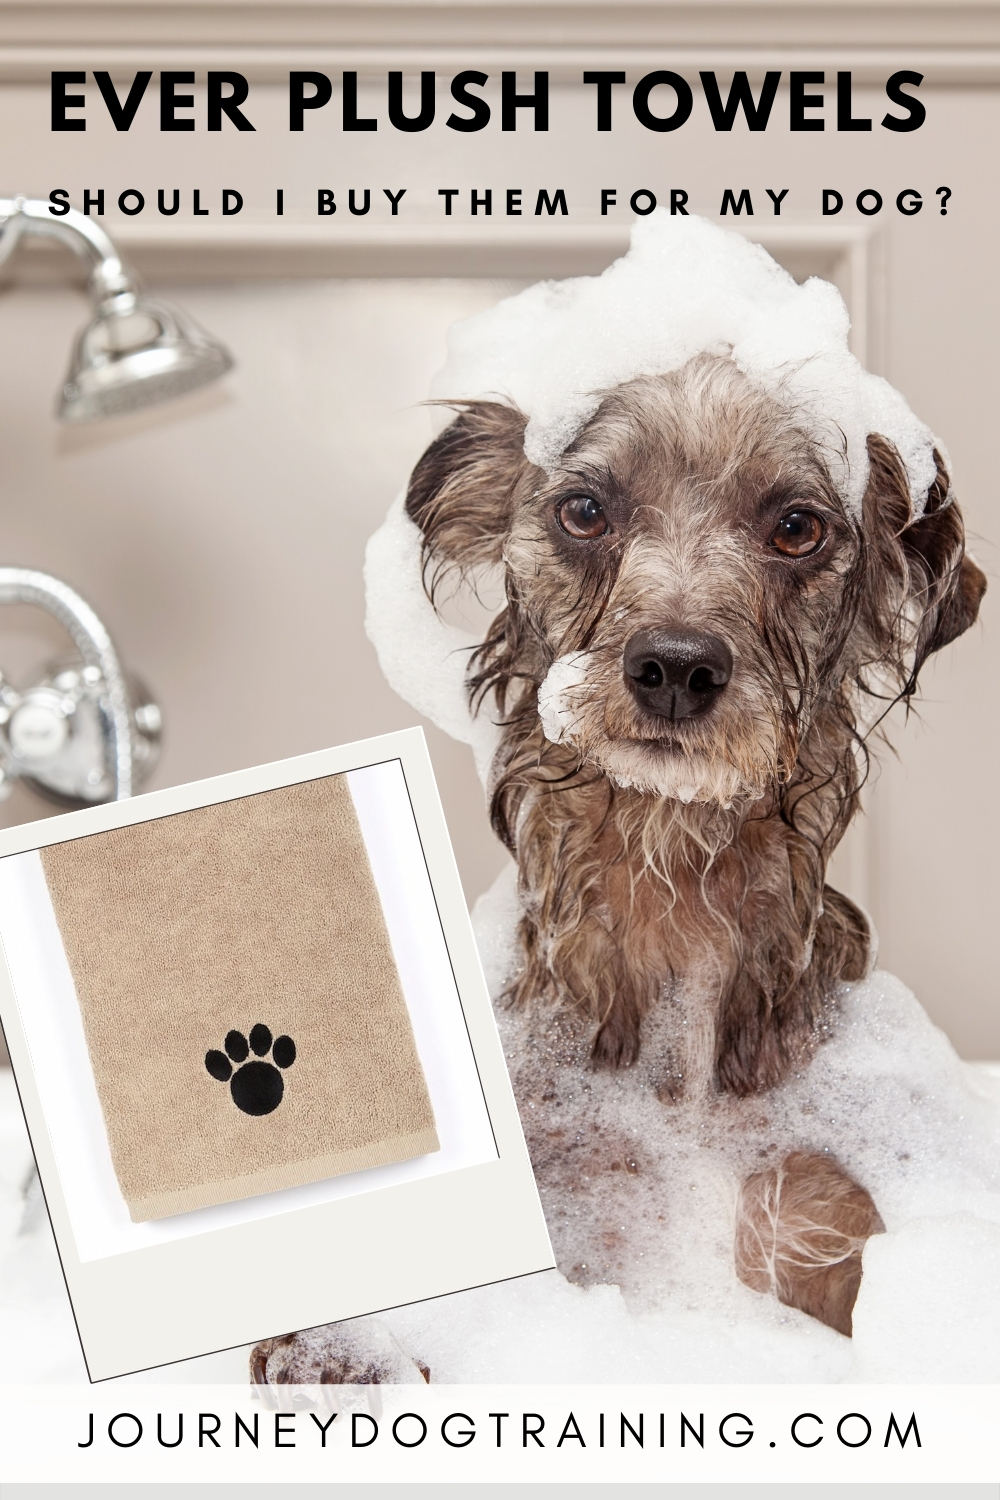 Should I buy Ever Plush Towels for my dog? | journeydogtraining.com